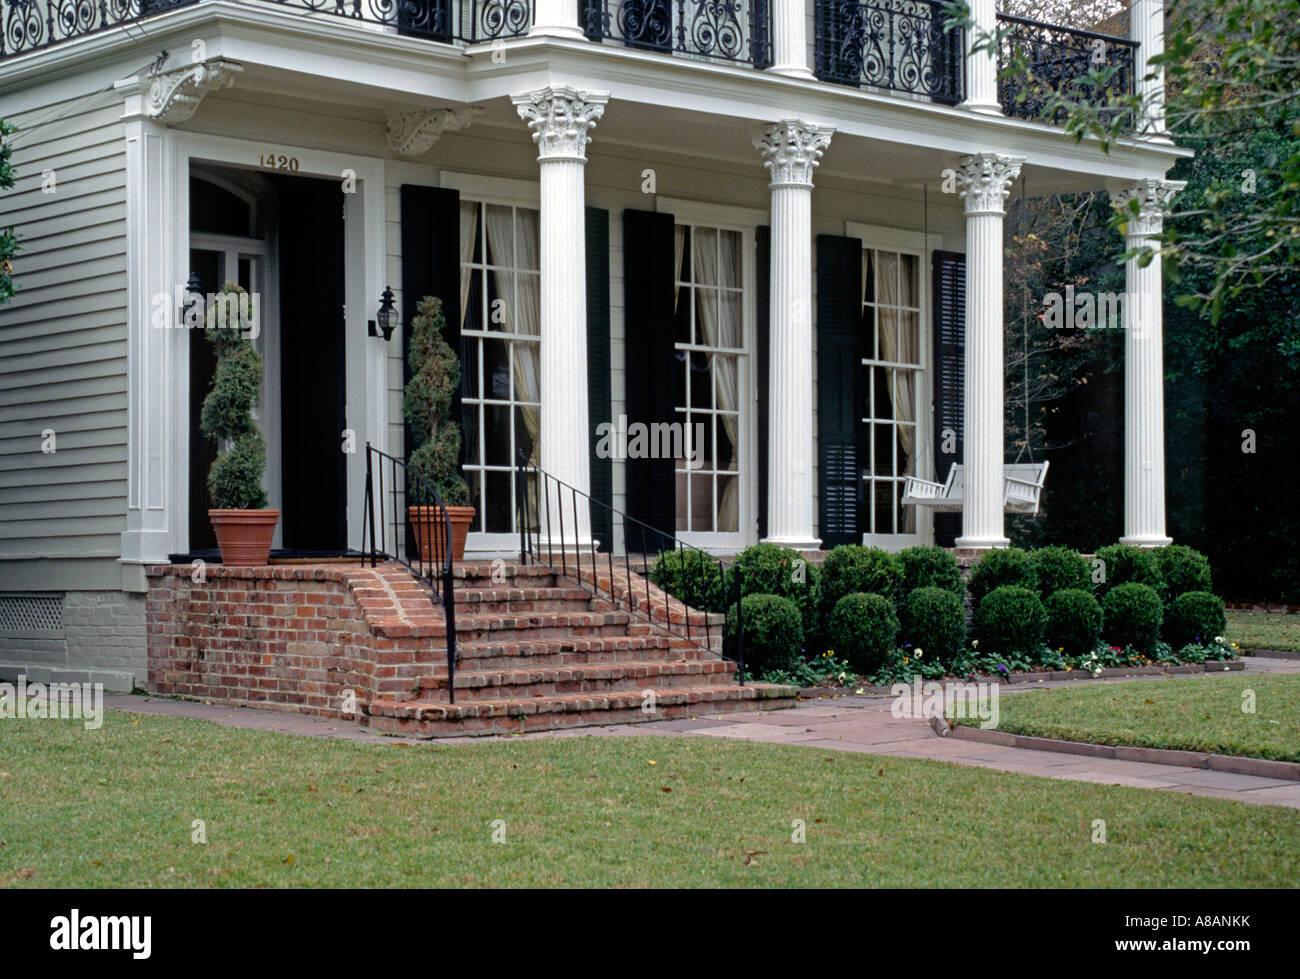 Front Porch With Columns Of A Southern Style Mansion In The Garden